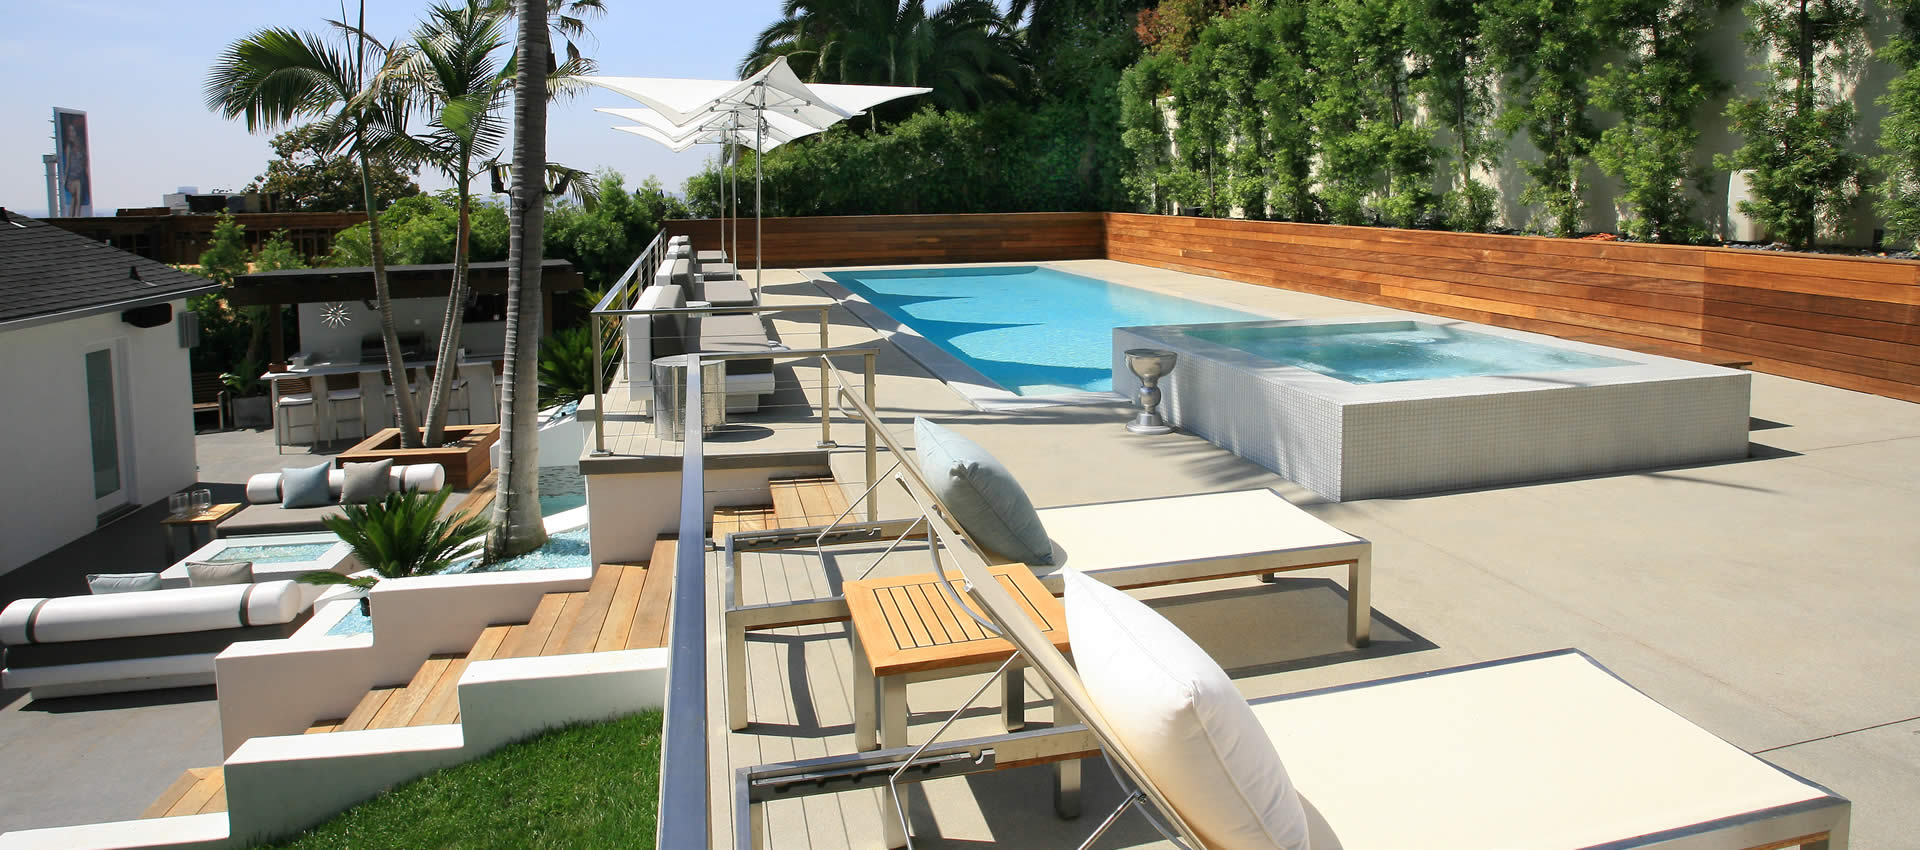 Los Angeles Pool Builders Southern California Swimming ... on Southern Pools And Outdoor Living id=58965